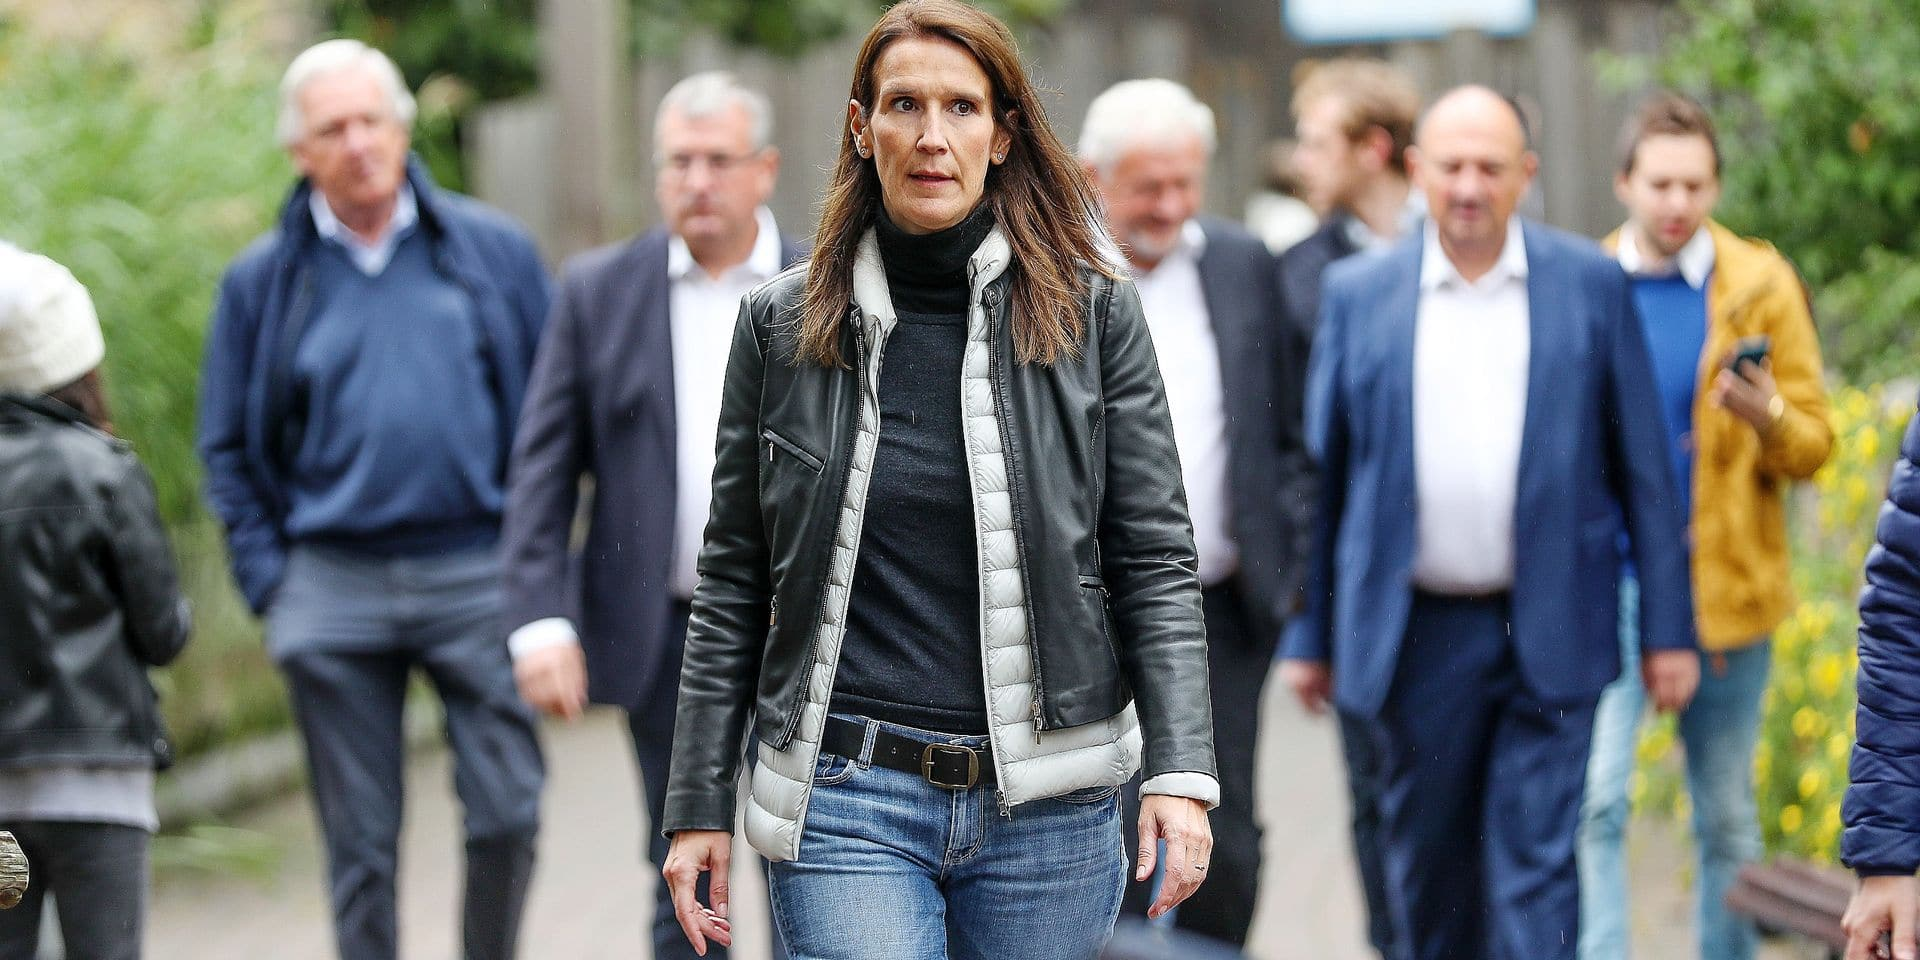 Minister of Budget Sophie Wilmes arrives for a party meeting of French-speaking liberals MR on the occasion of the end of the summer break, Saturday 07 September 2019 in Stavelot. BELGA PHOTO BRUNO FAHY